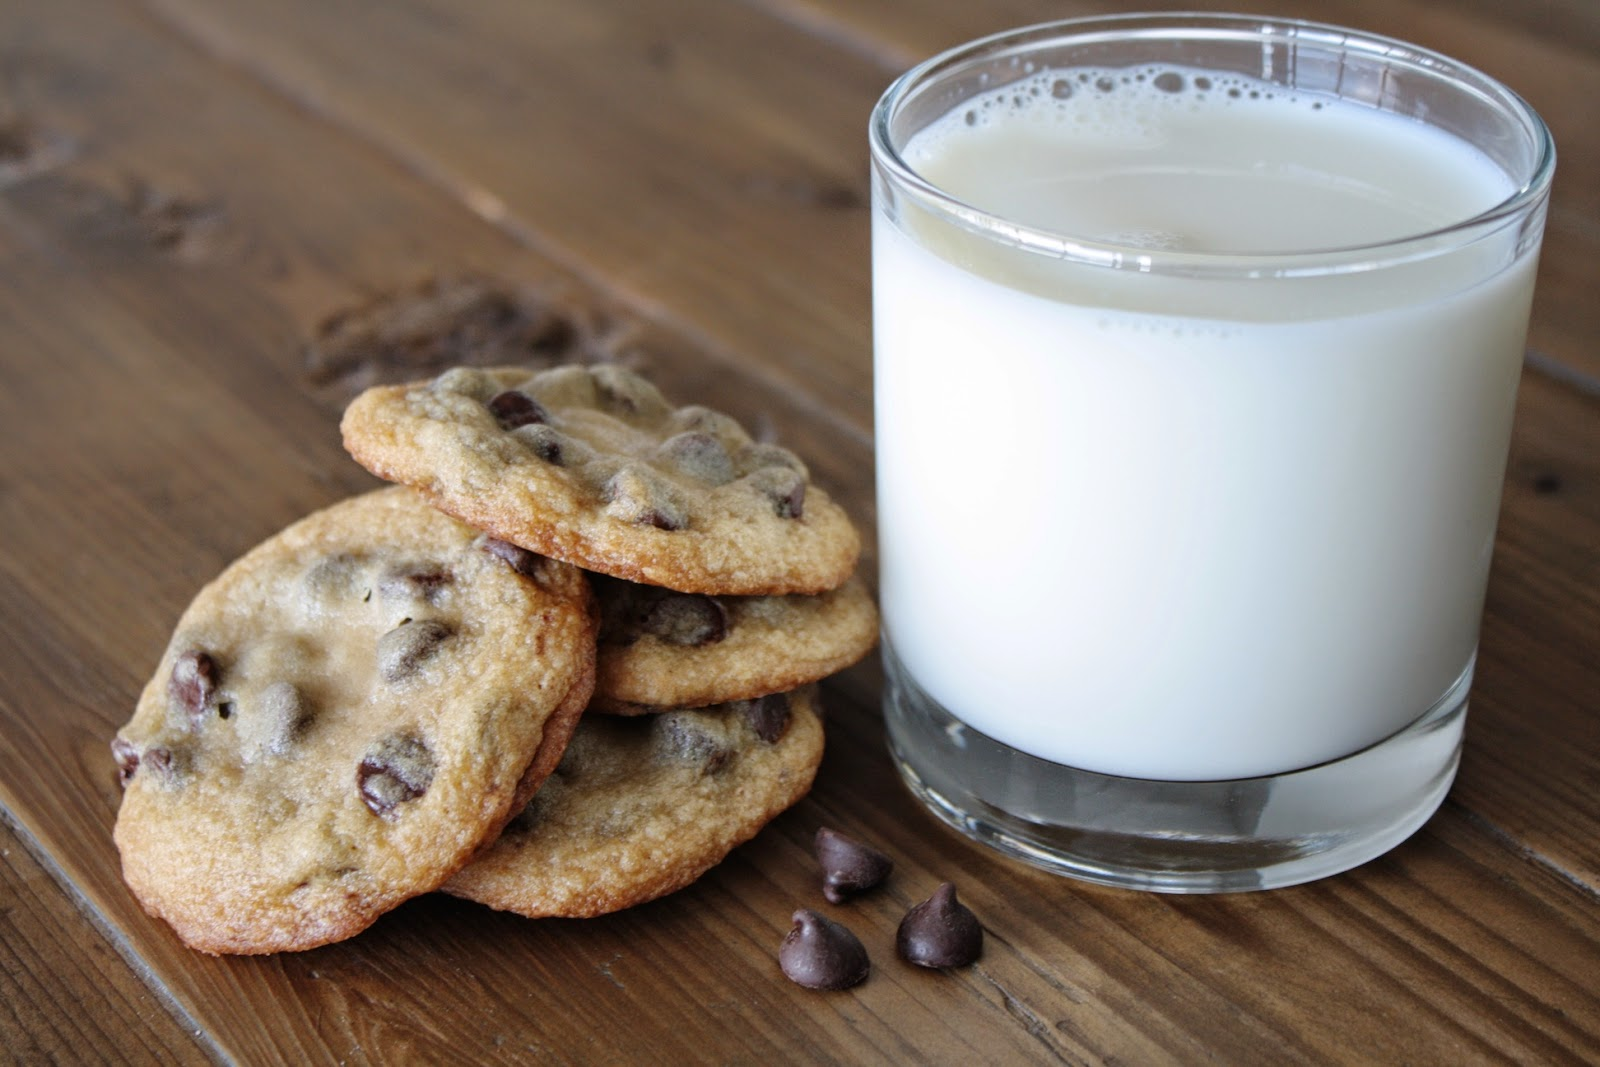 Cookies with a glass of milk beside them.